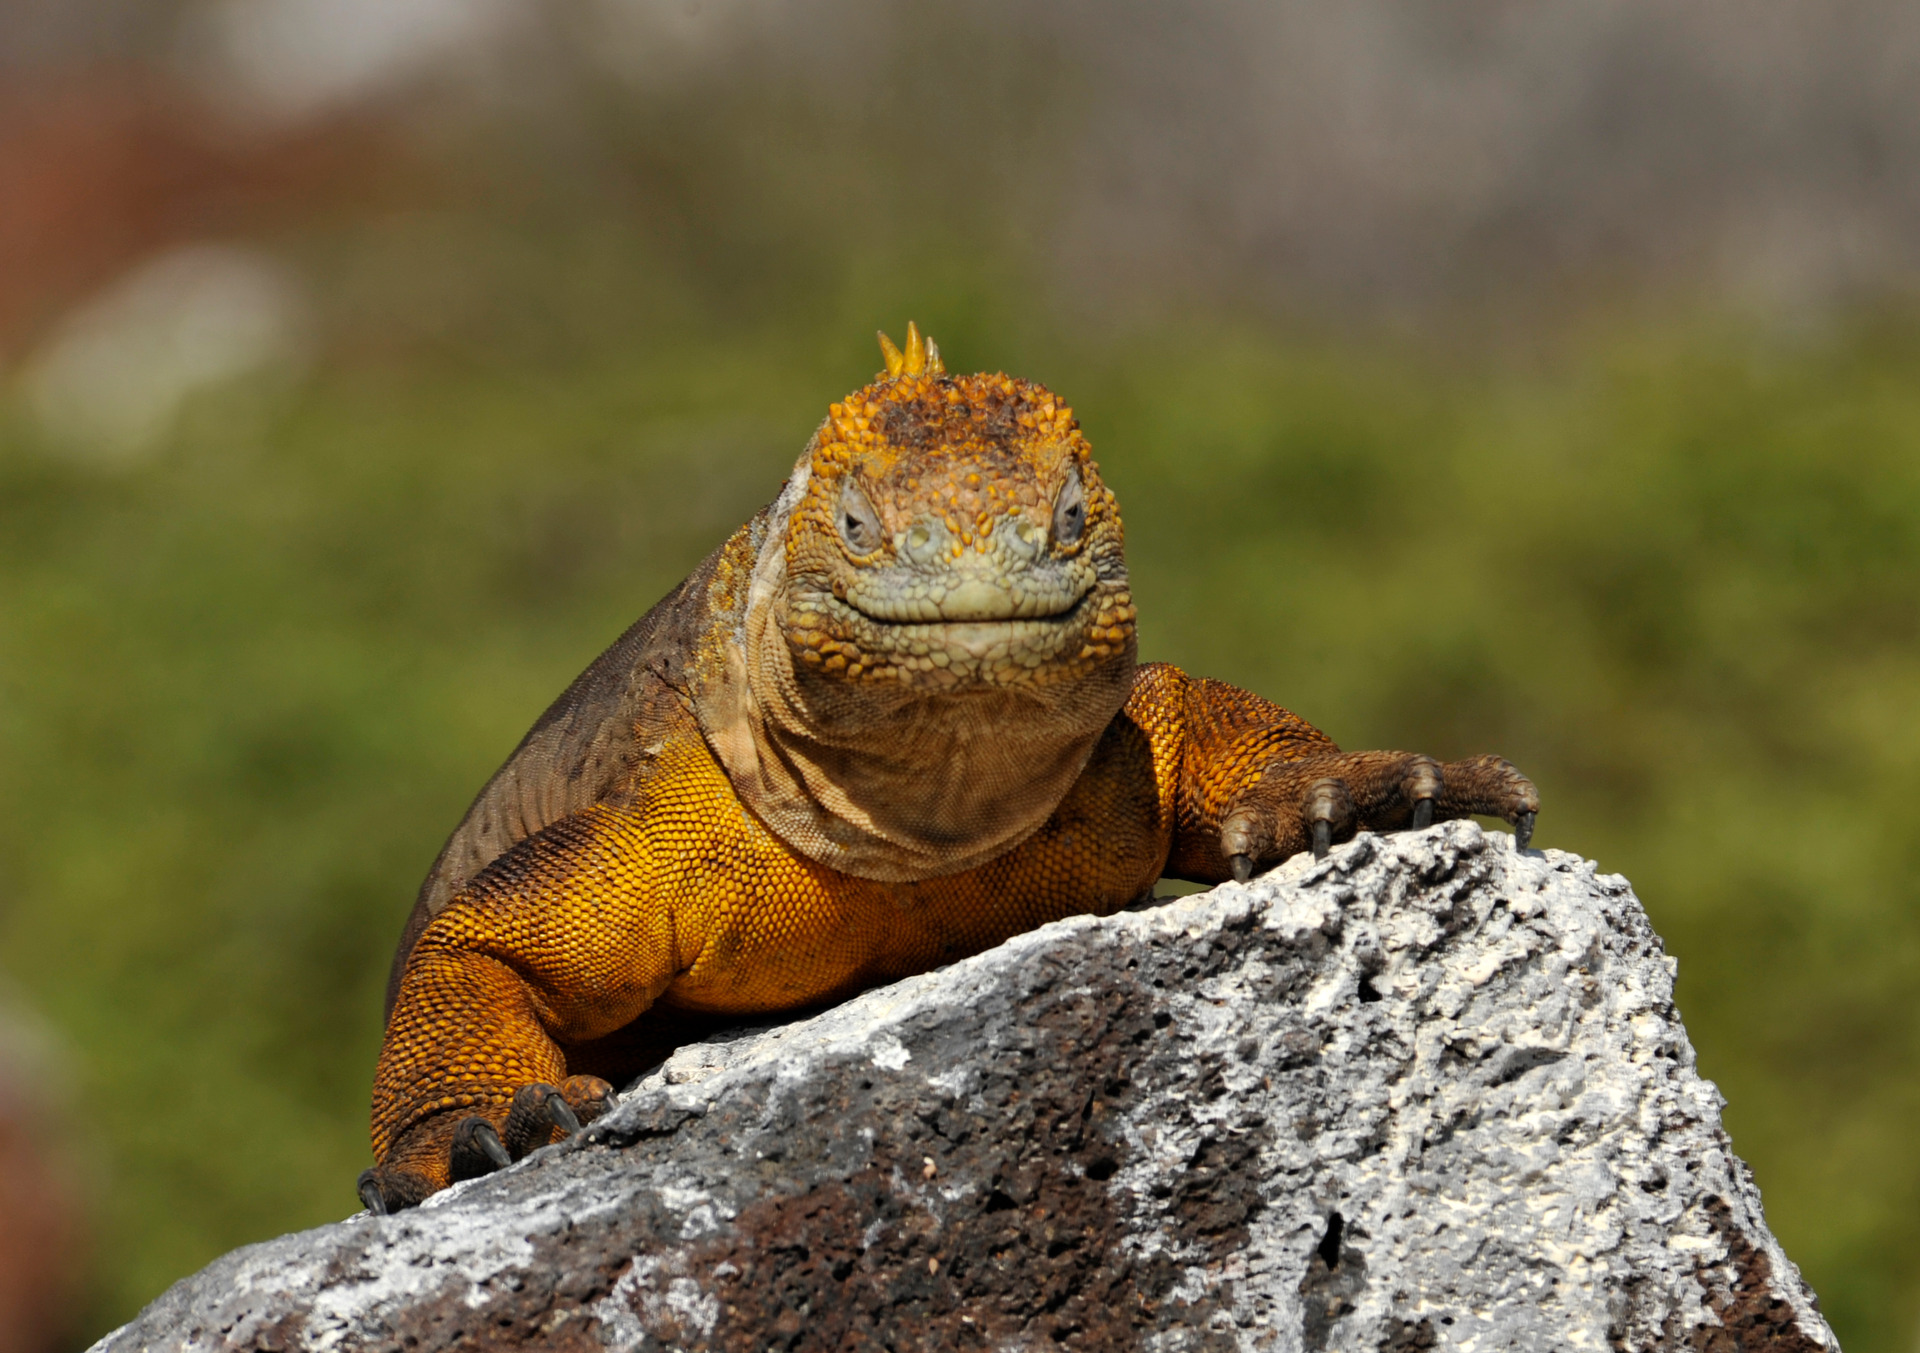 Galapagos Islands' first resort given green light